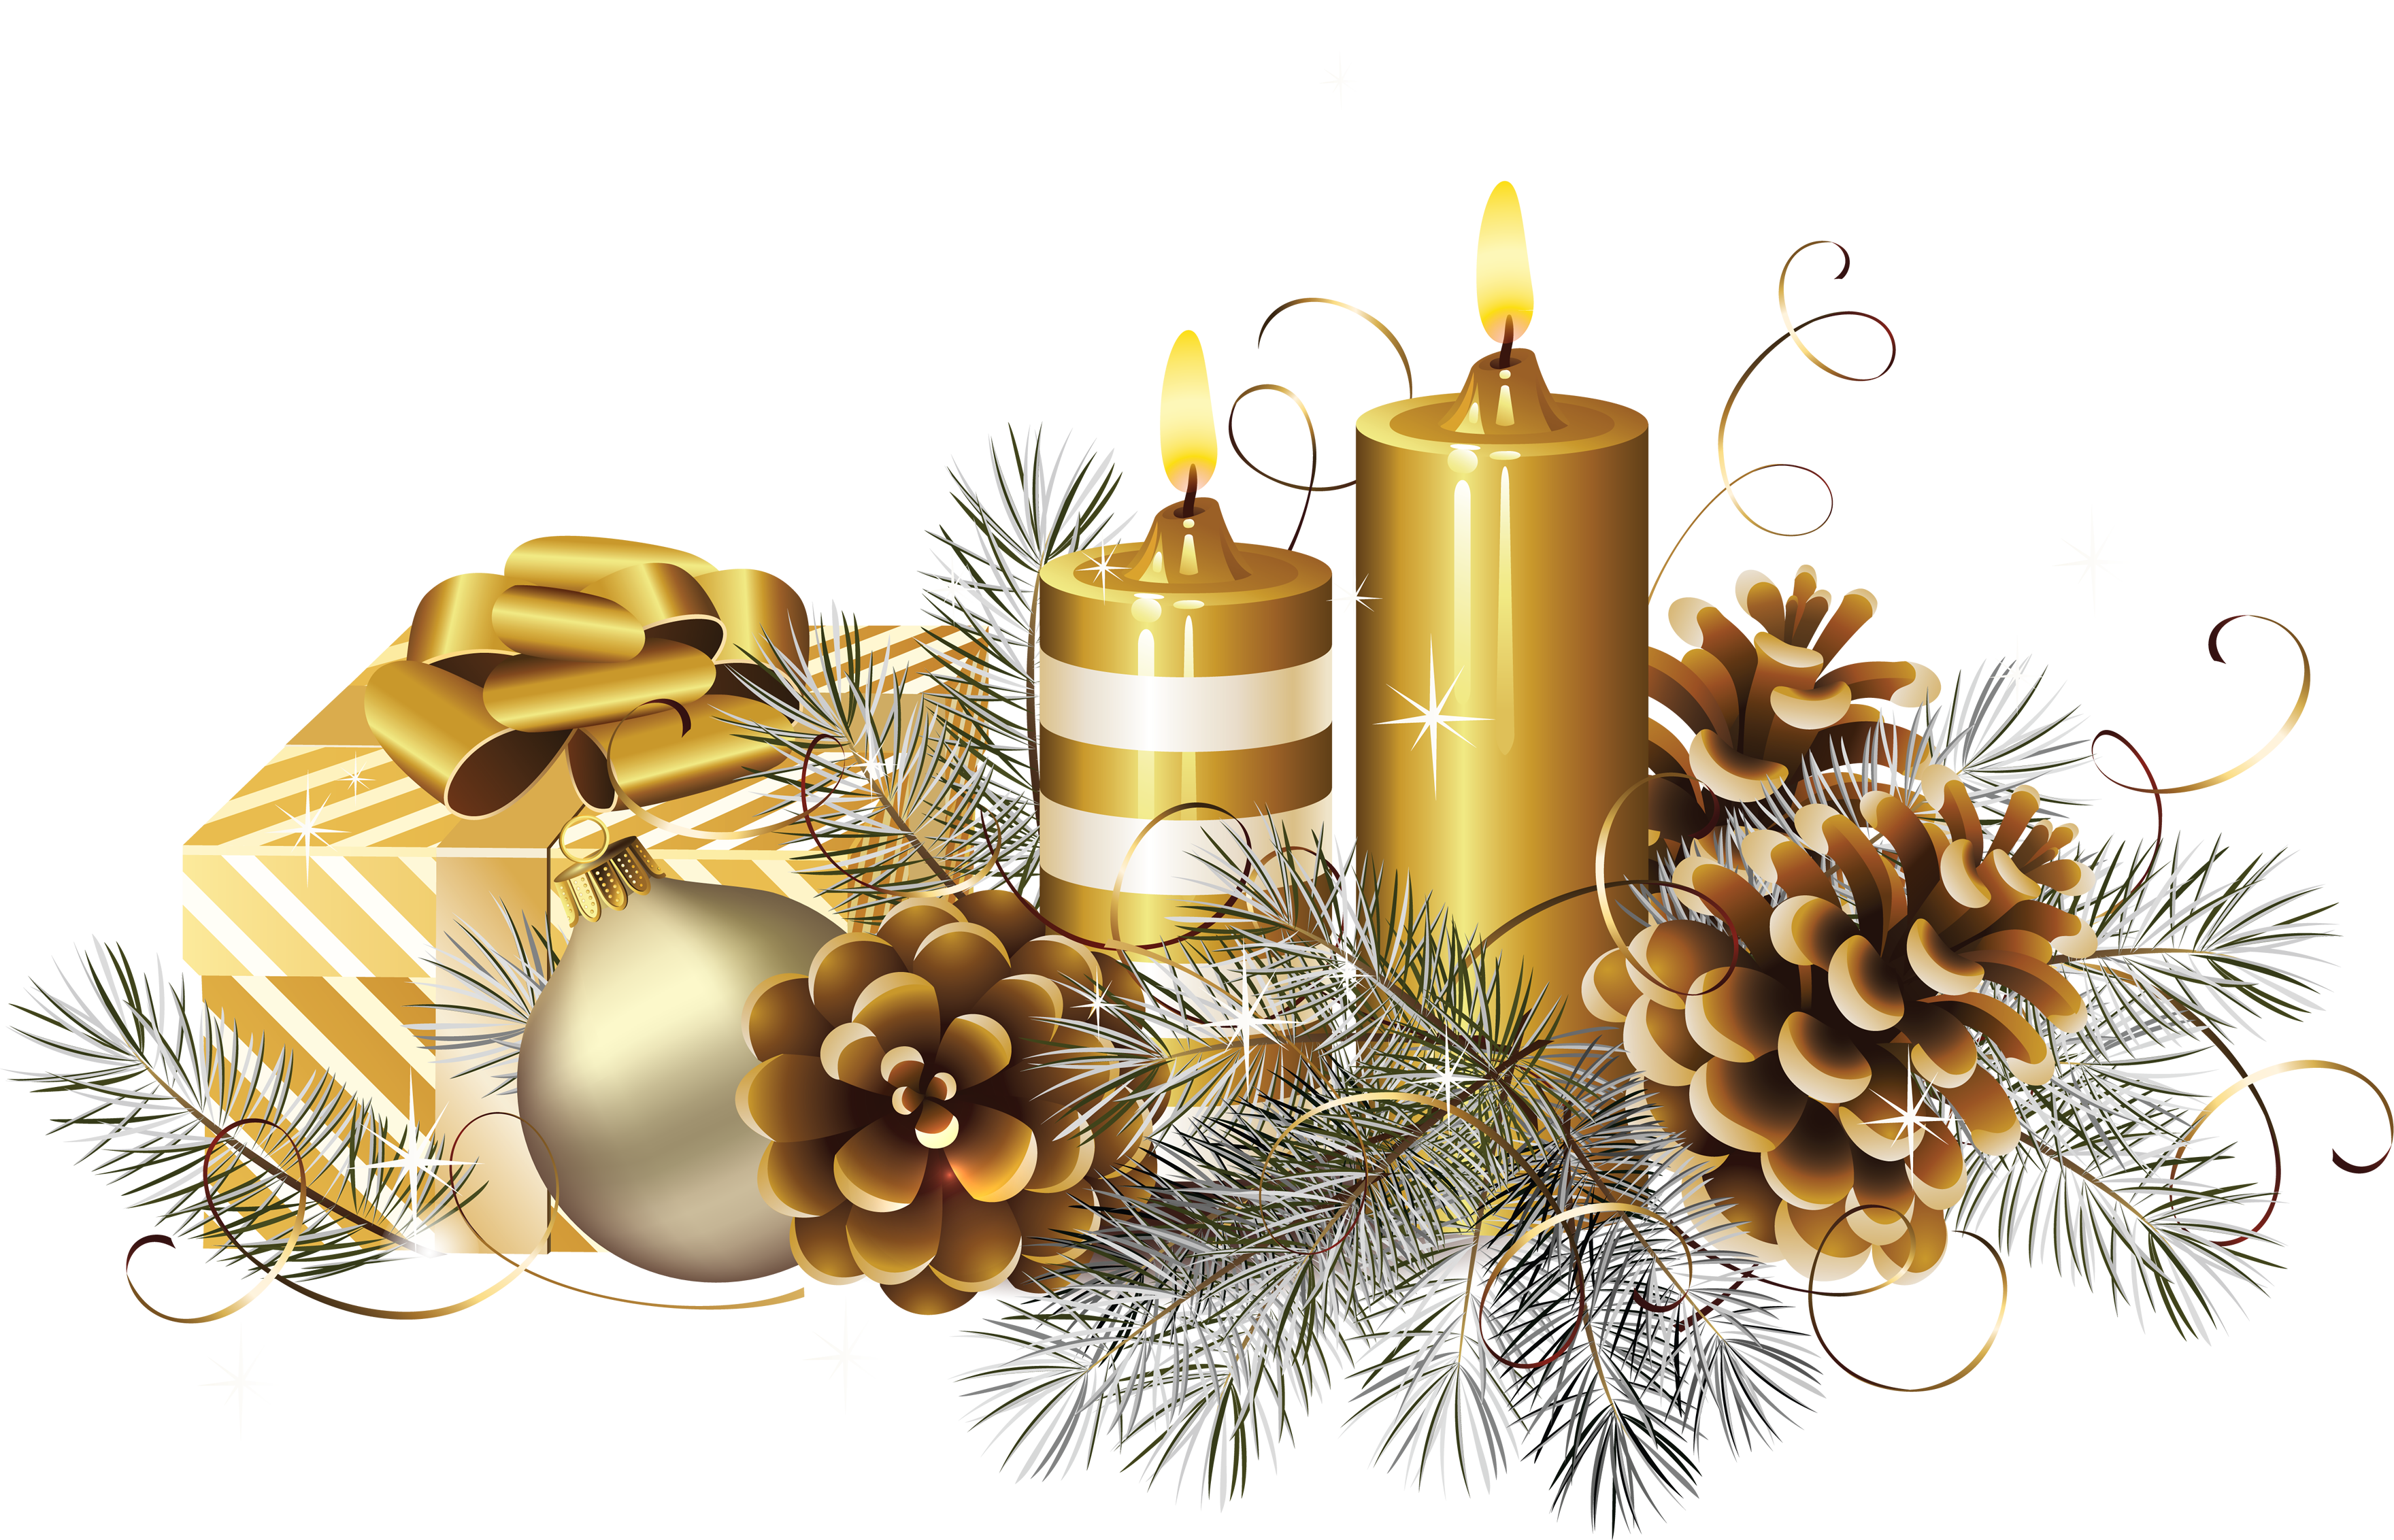 Png Christmas.Christmas Candle S Png Image Purepng Free Transparent